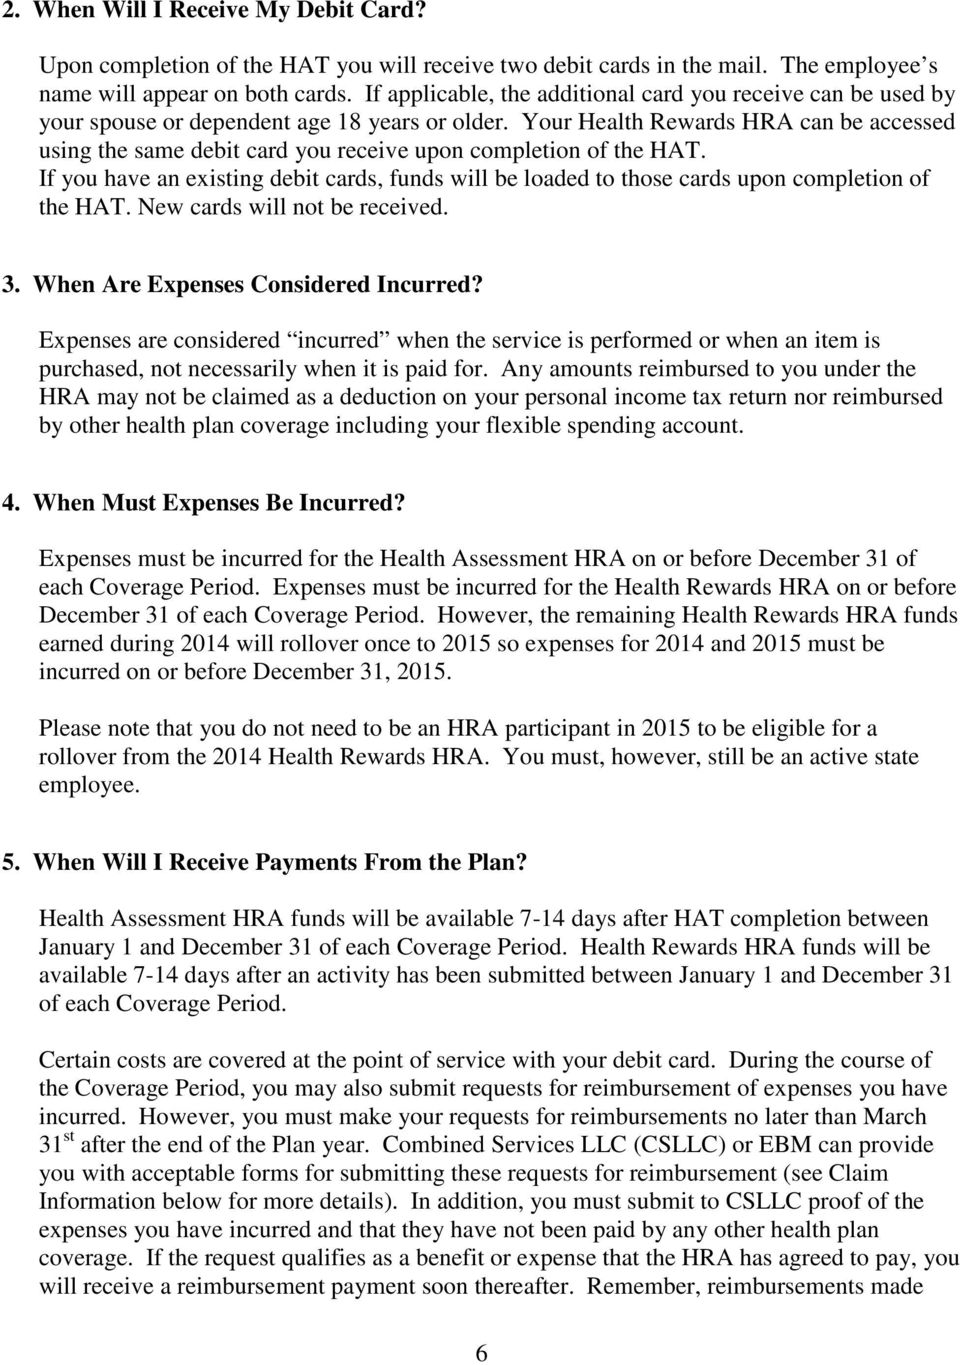 Your Health Rewards HRA can be accessed using the same debit card you receive upon completion of the HAT.